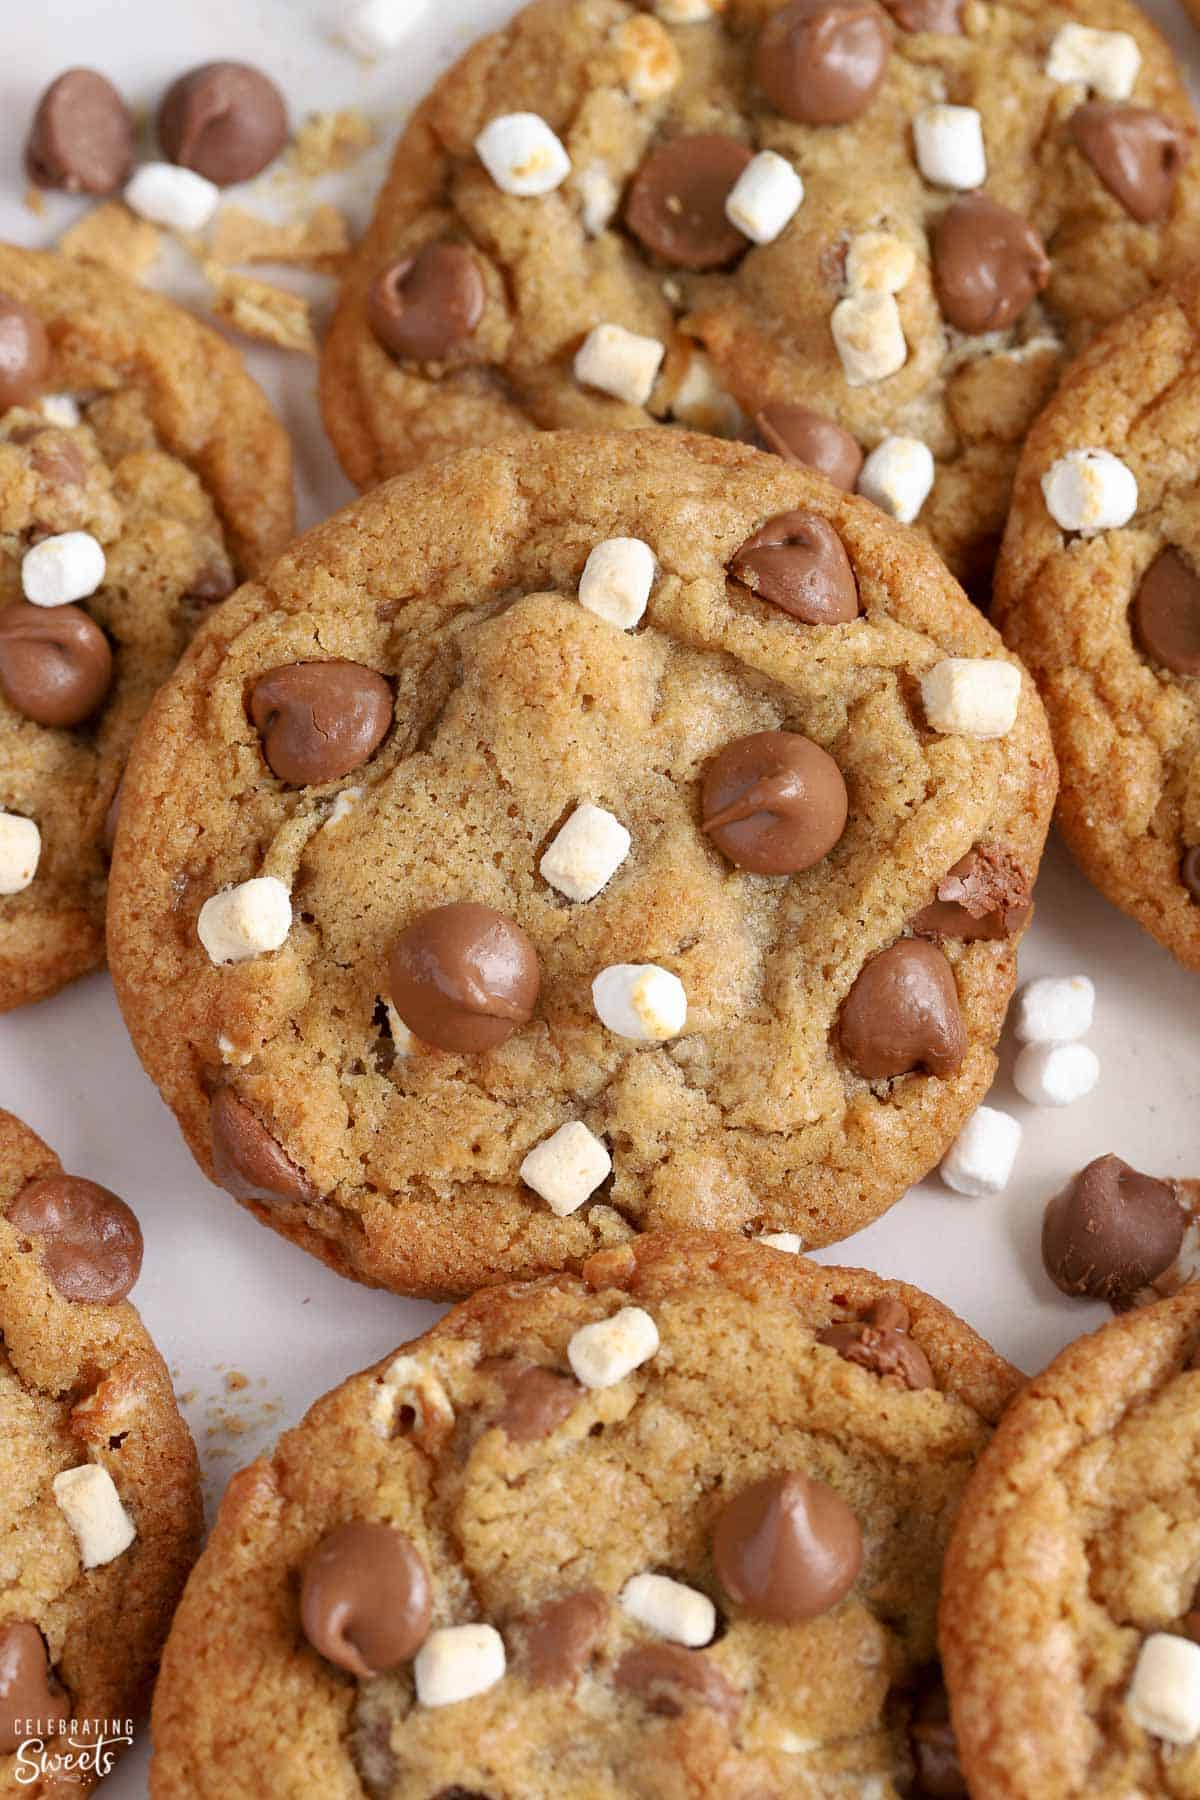 Closeup of s'mores cookies topped with mini marshmallows and chocolate chips.